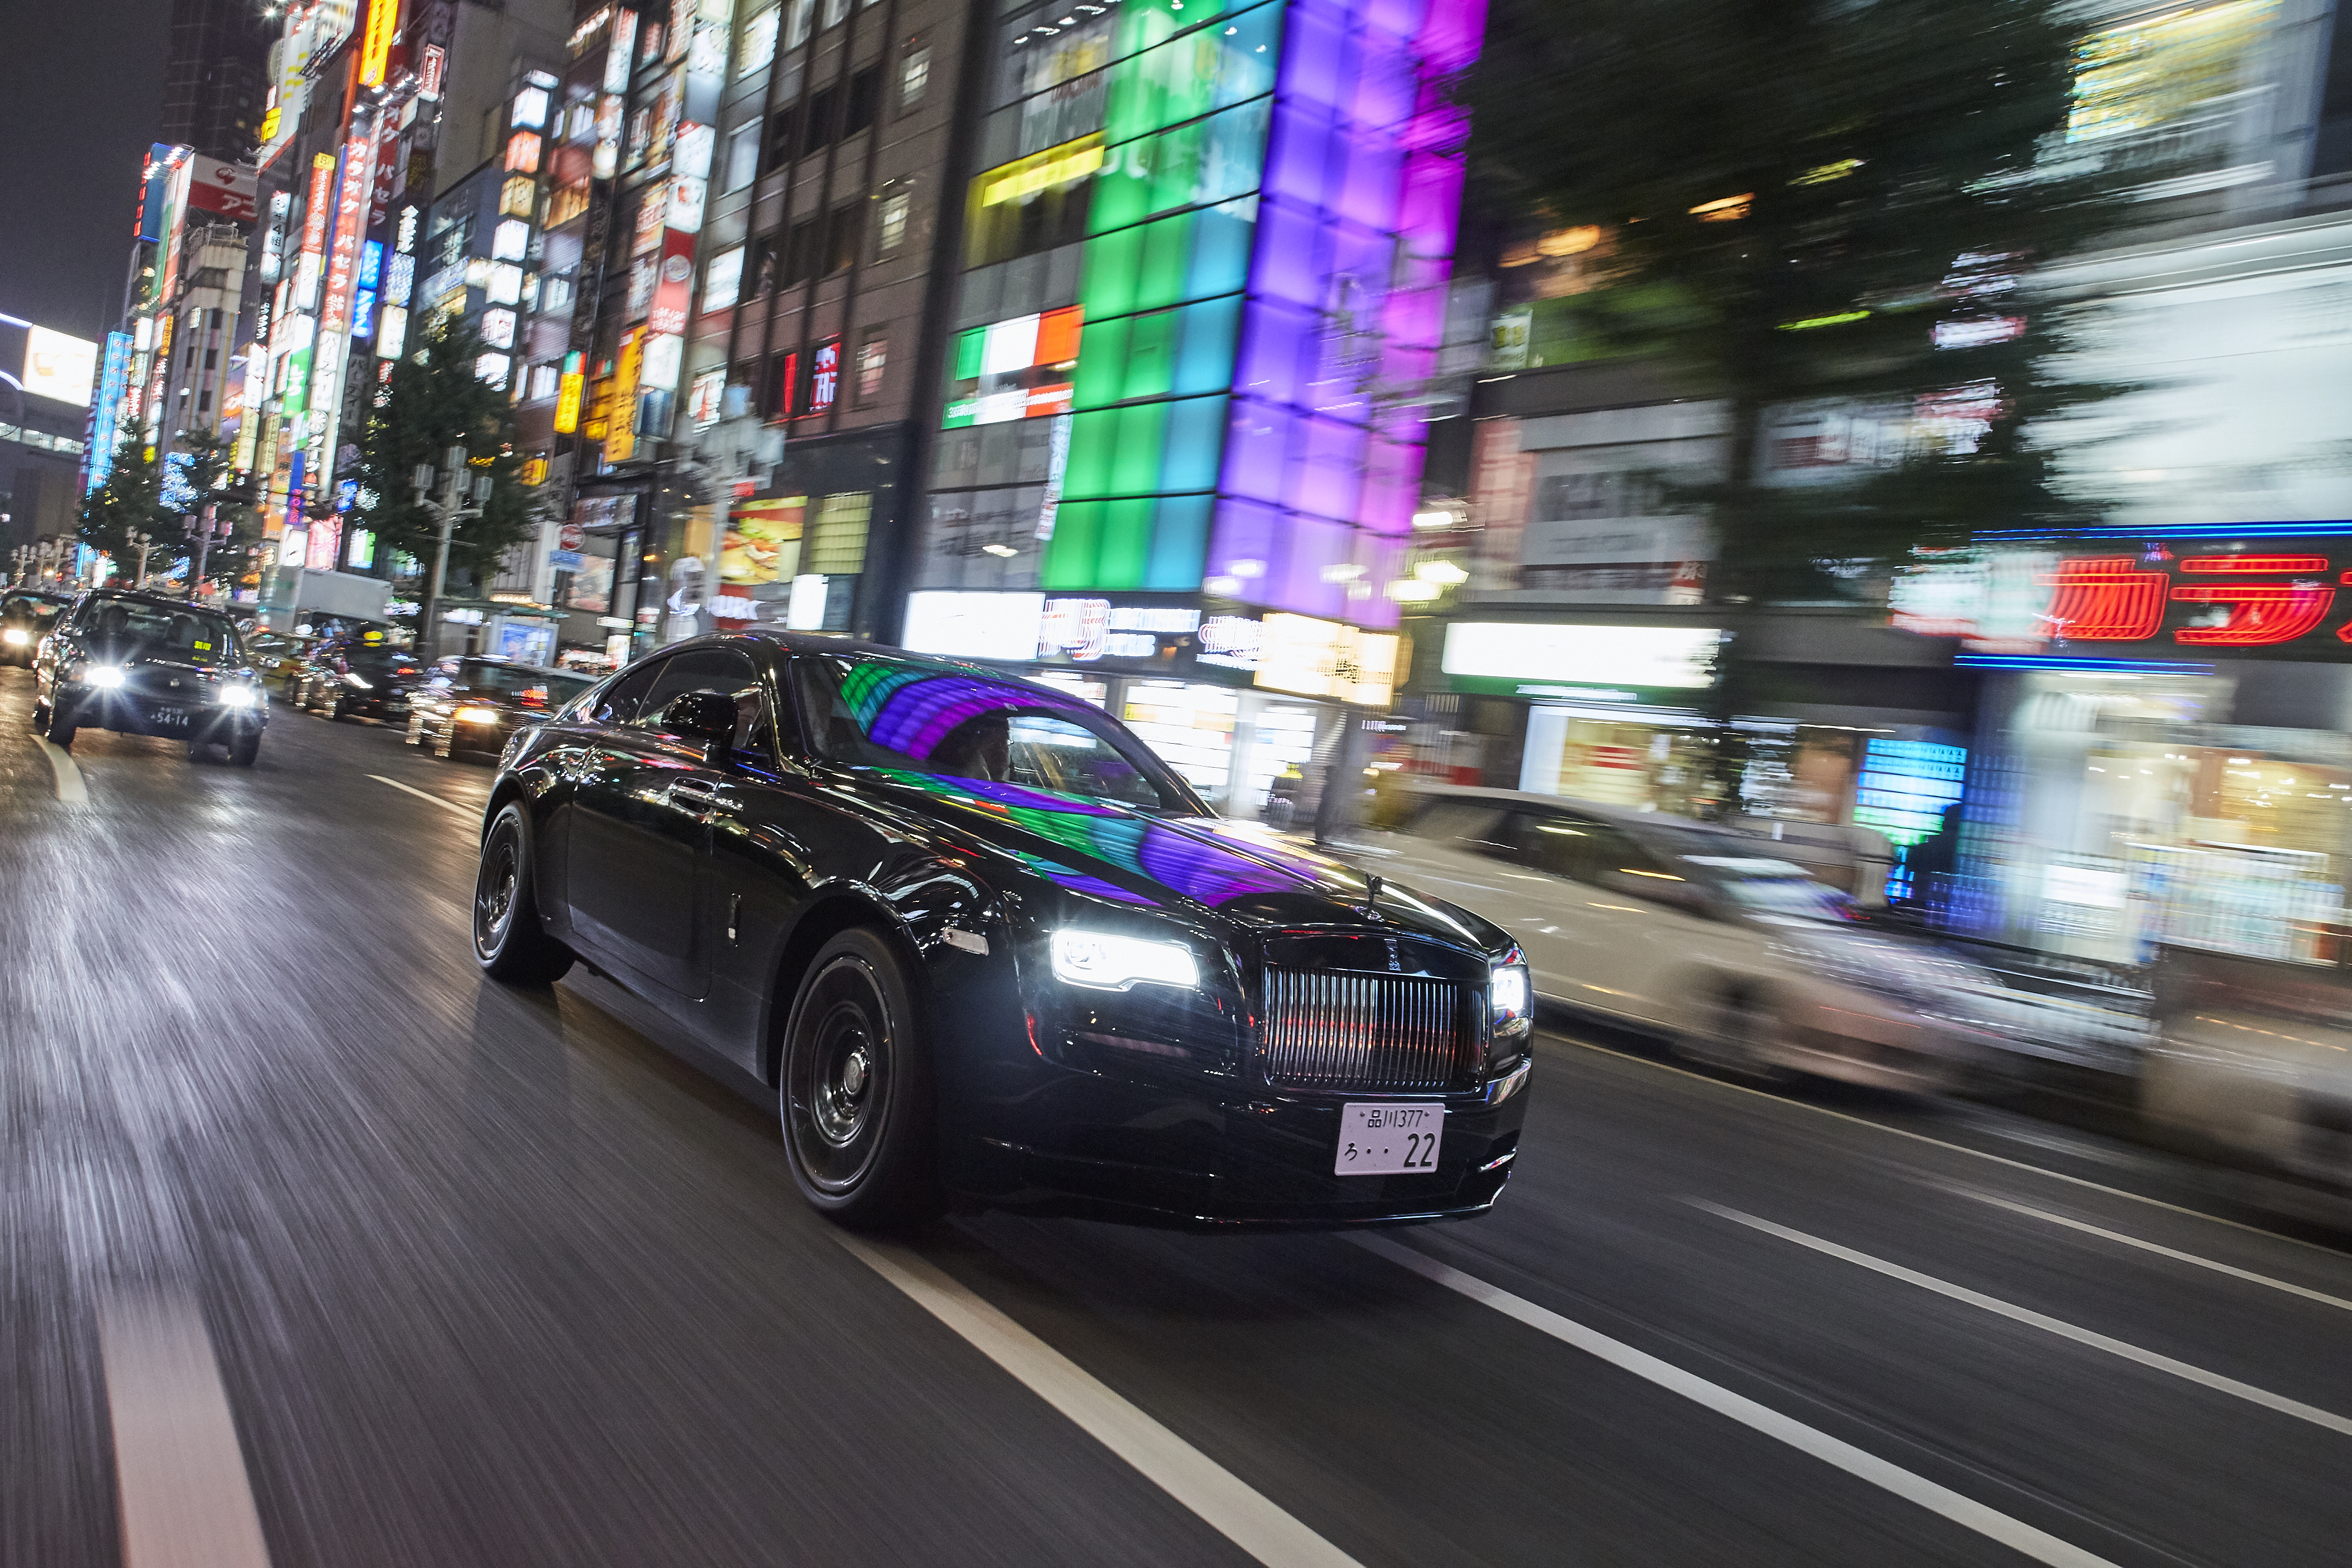 Driving a Rolls-Royce in Tokyo comes with some unforeseen perks.